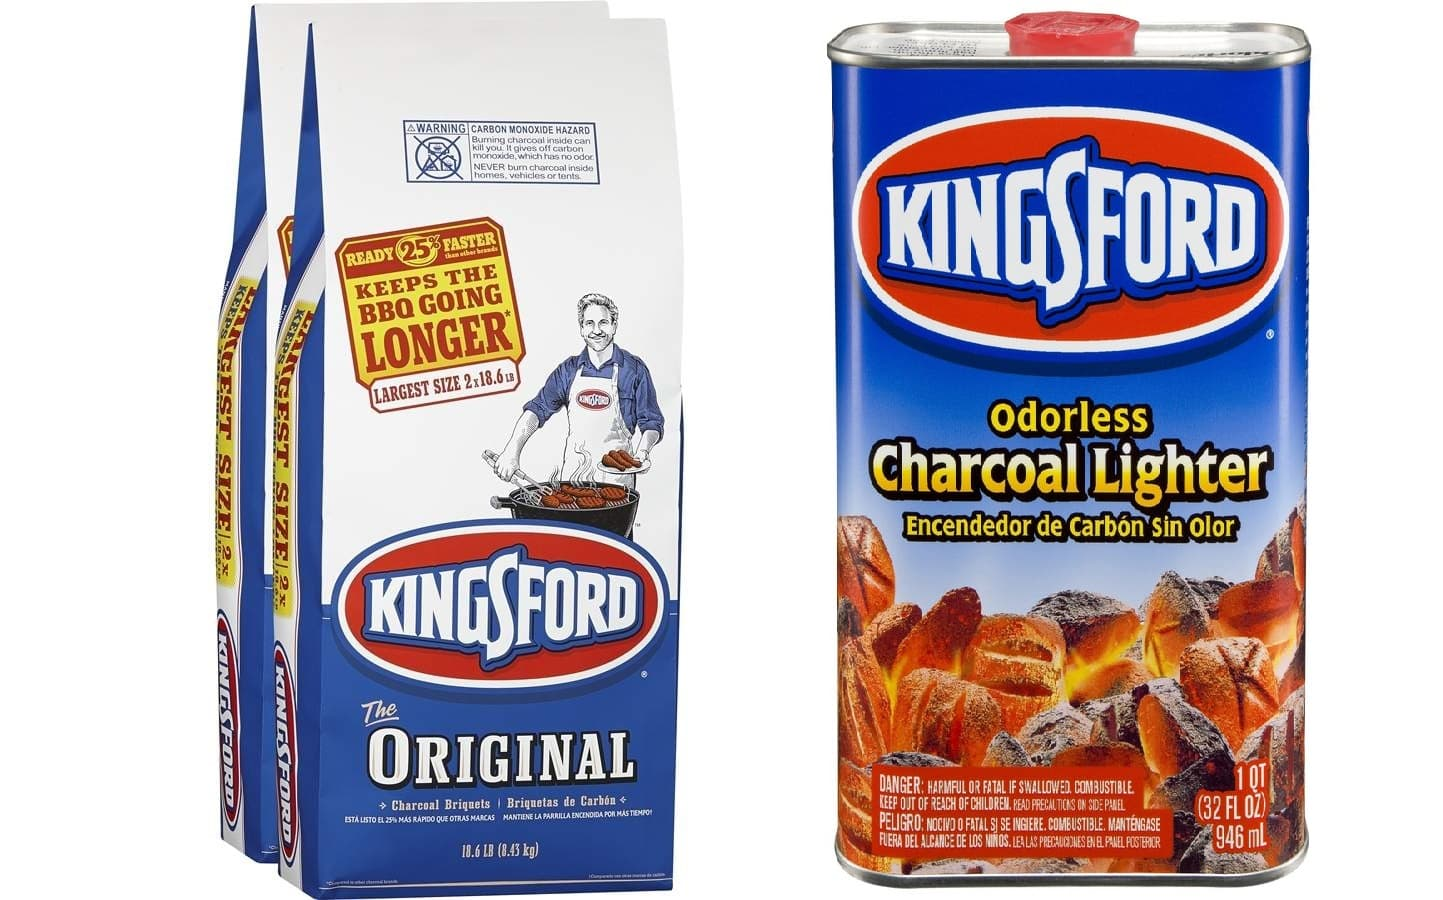 Lowes - TODAY ONLY Kingsford 2-Pack 18.6-lb (37.2-lb Total) Charcoal Briquettes + 32-oz Charcoal Lighter Fluid $9.88